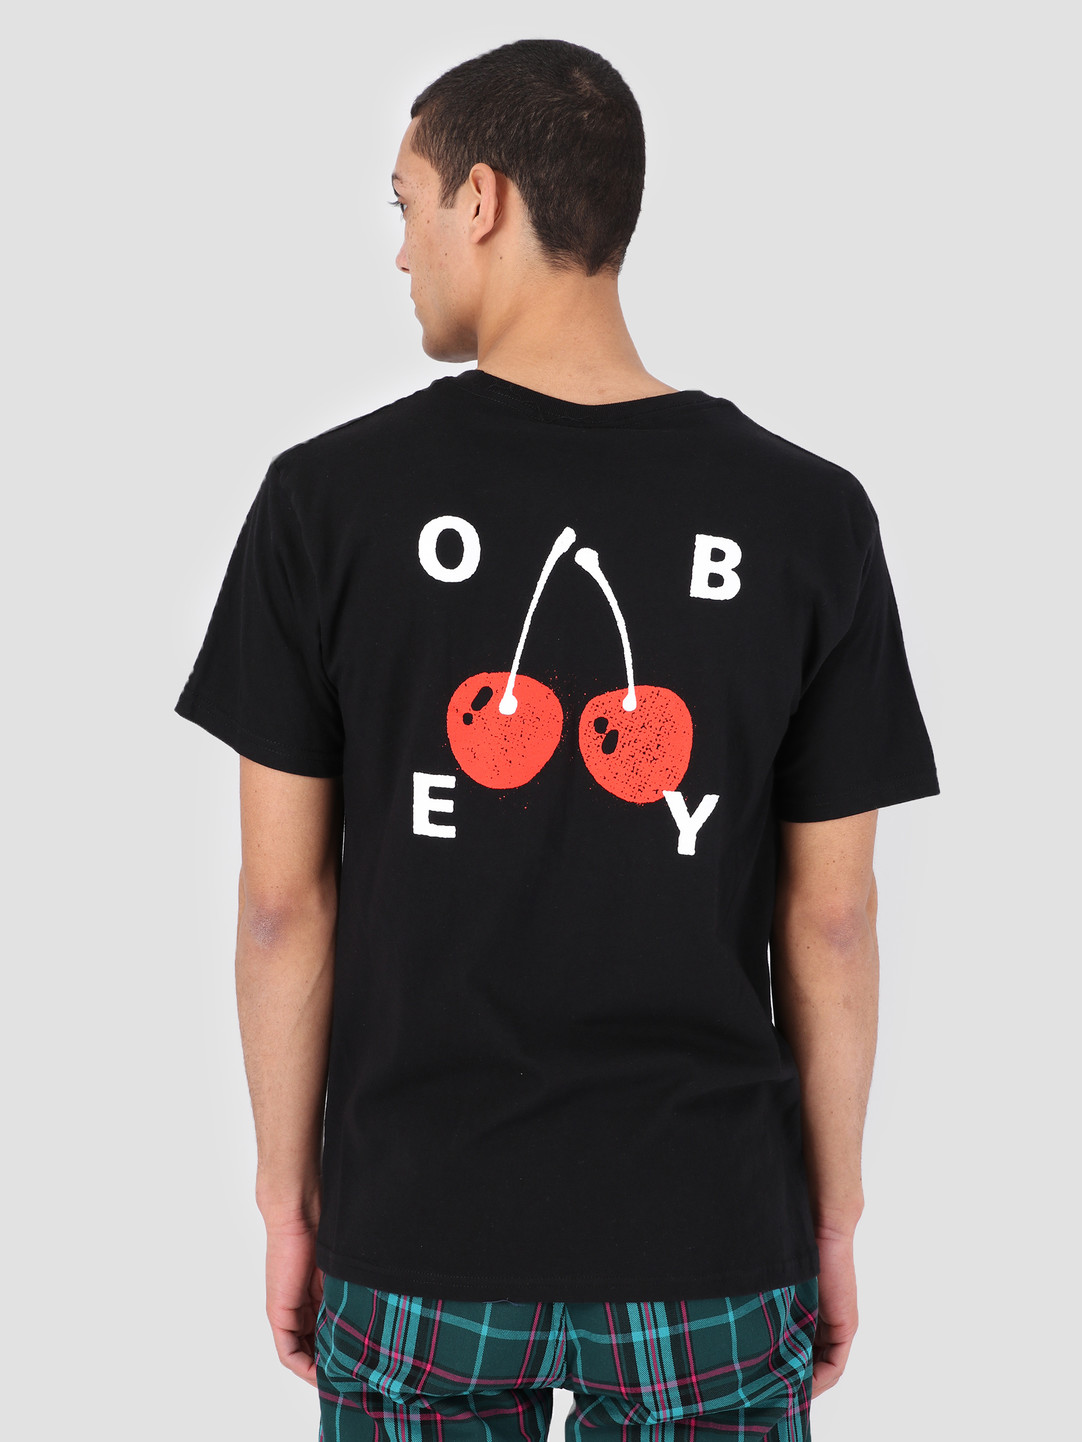 Obey Obey Obey Cherries 2 T-Shirt BLK 163081895